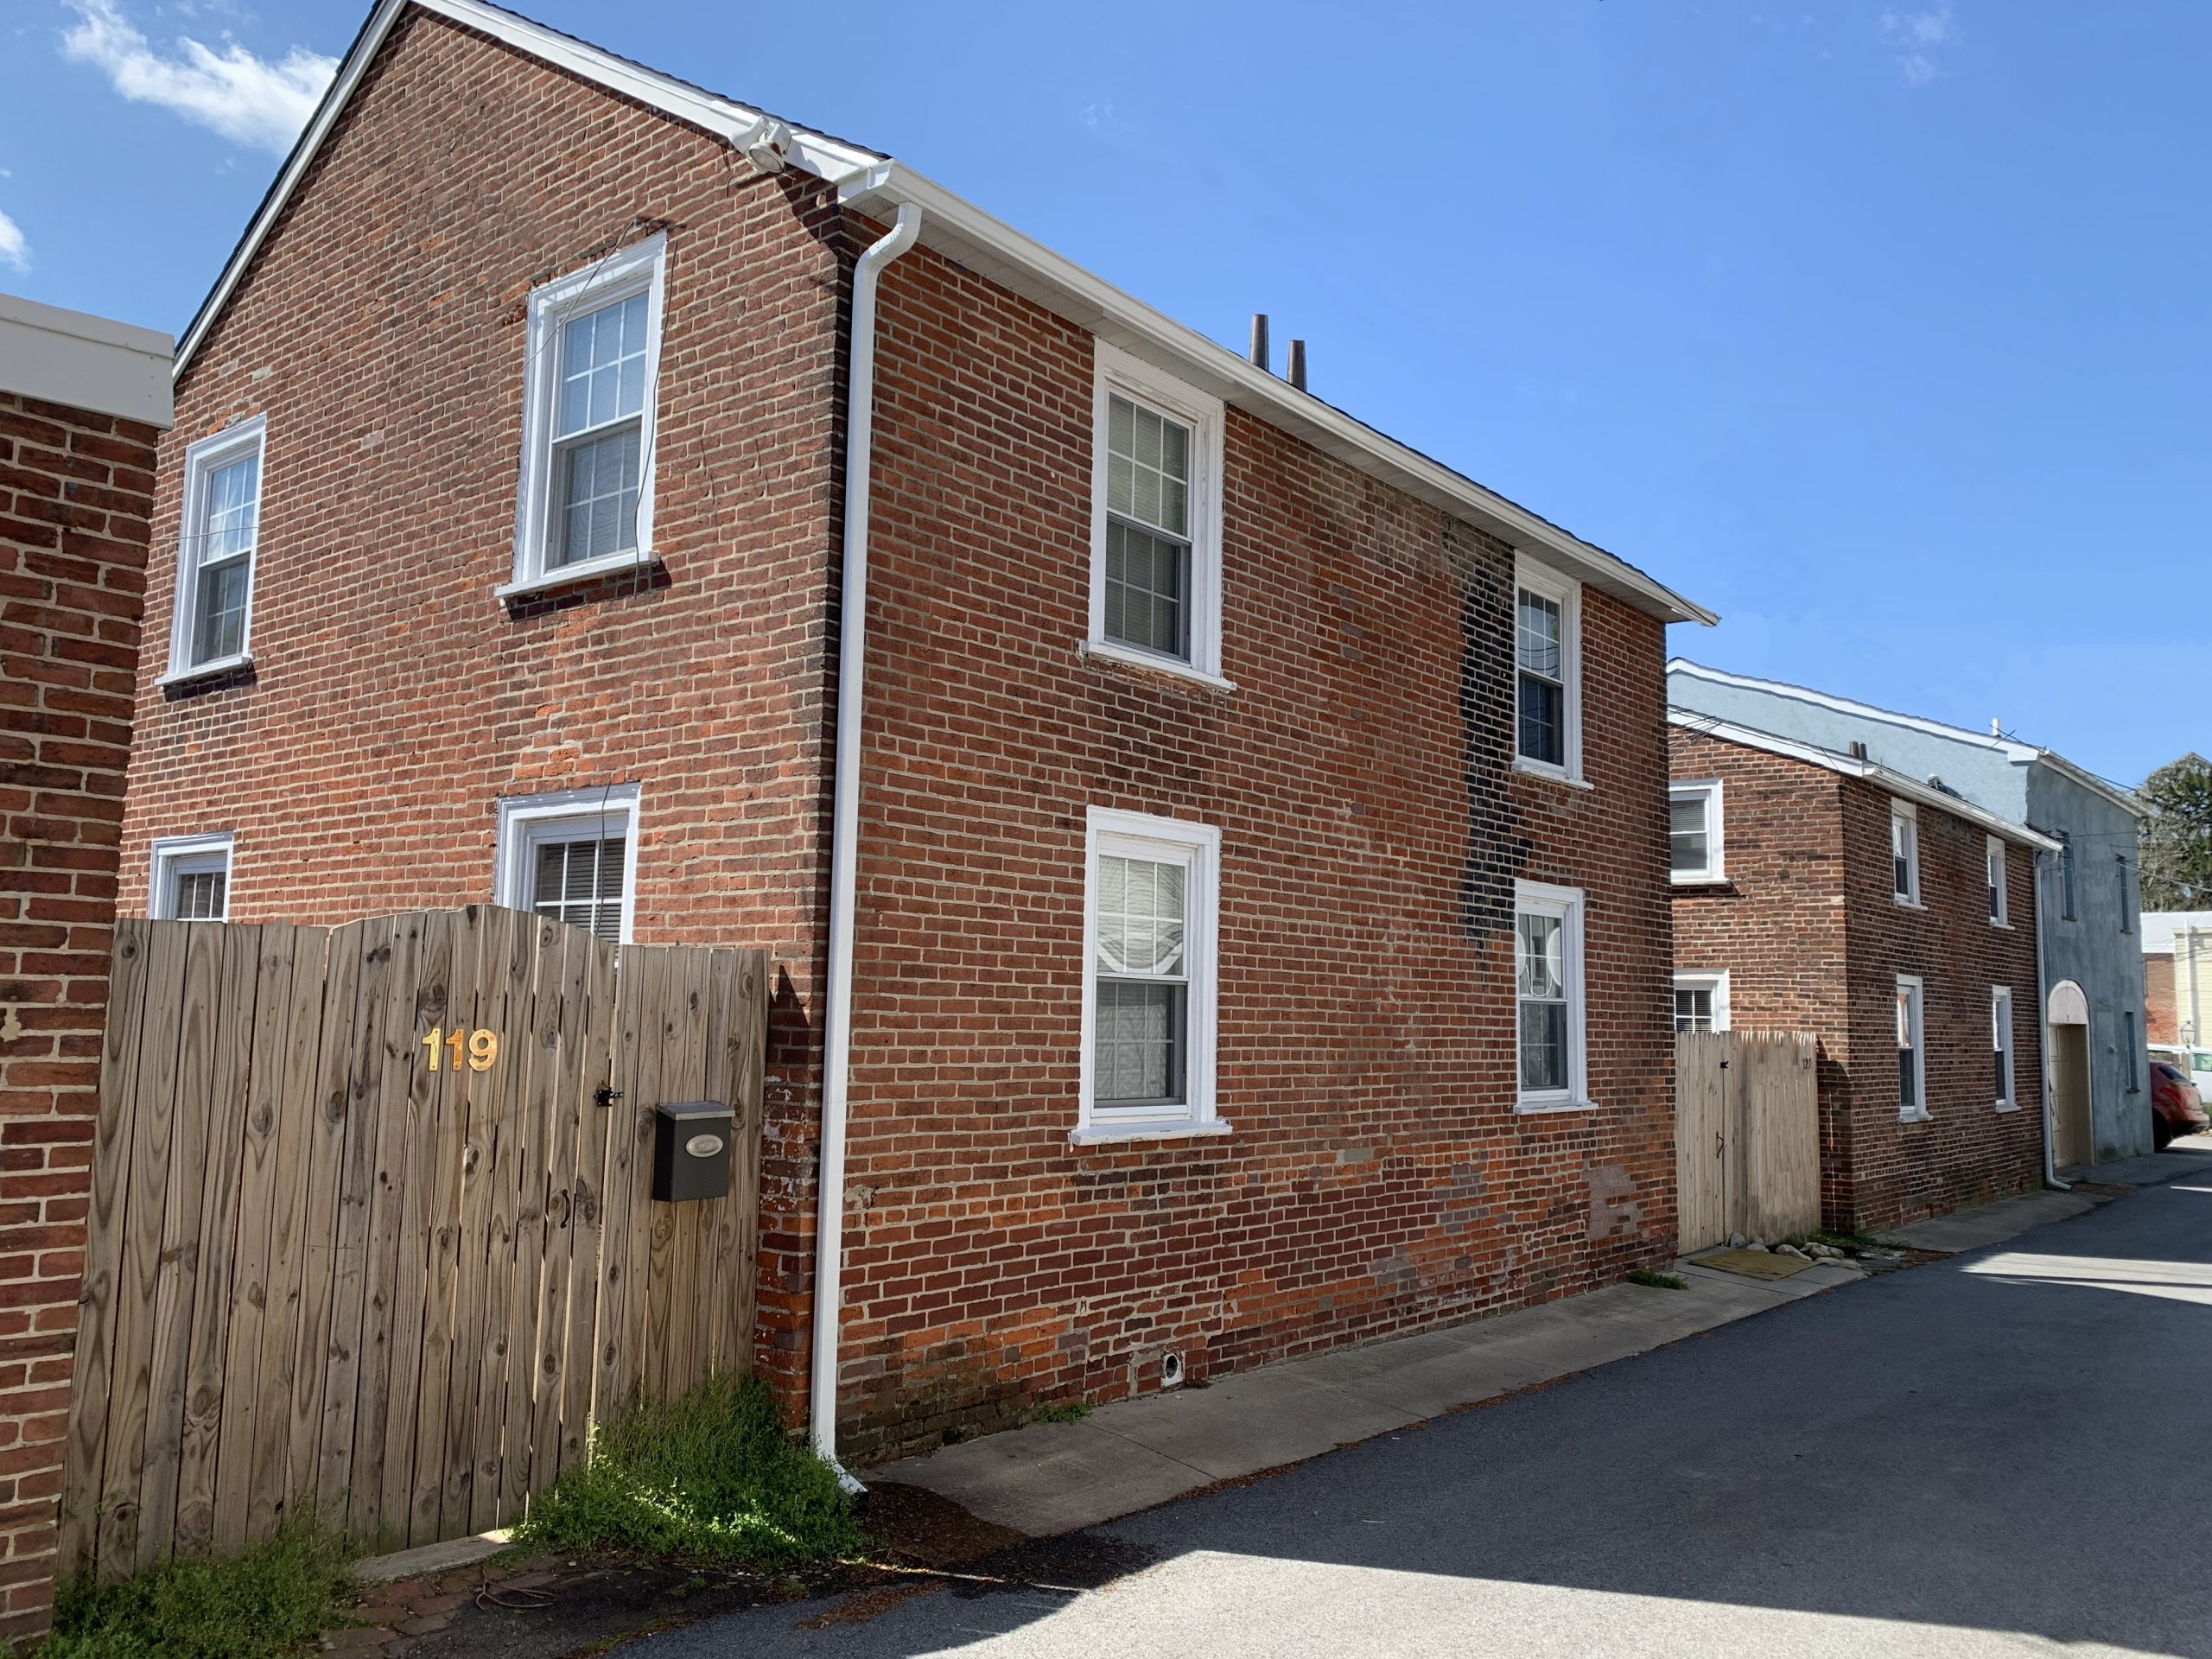 Two West Chester Apartment Buildings - Chester County Multifamily Commercial Real Estate Sale